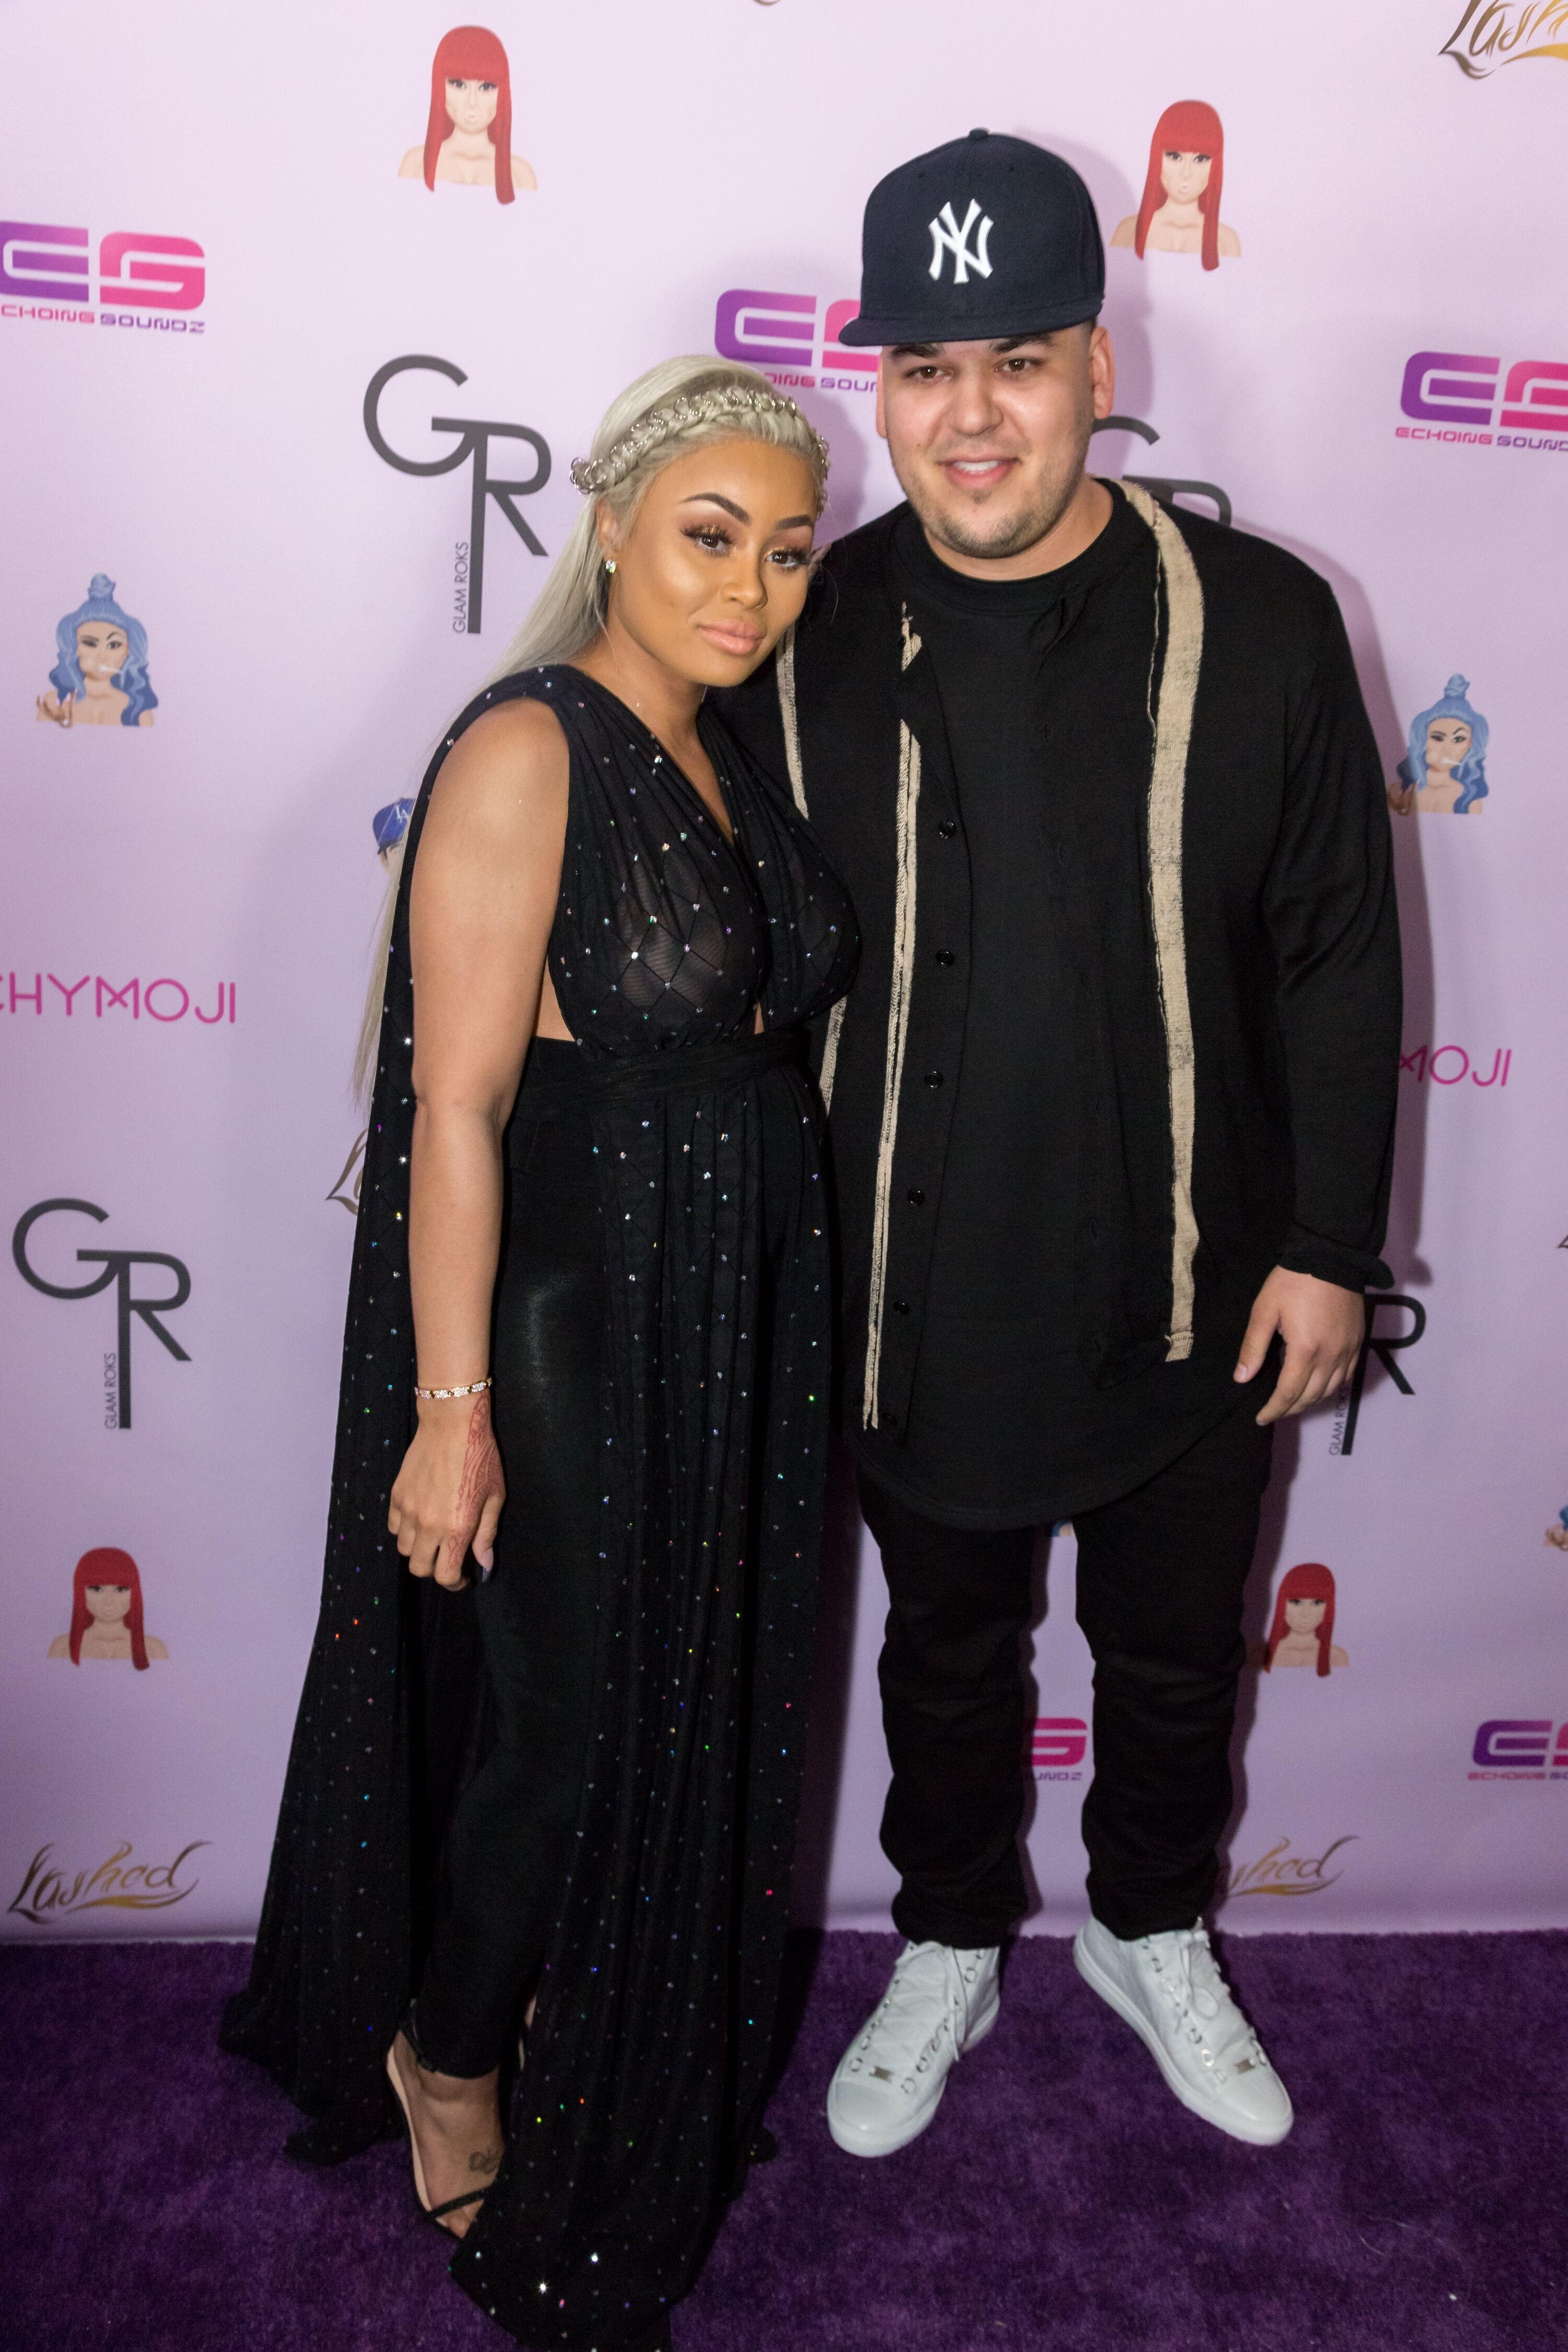 Blac Chyna and Rob Kardashian a the unveiling of her 'Chymoji' Emoji in May 2016/ Source: Getty Images